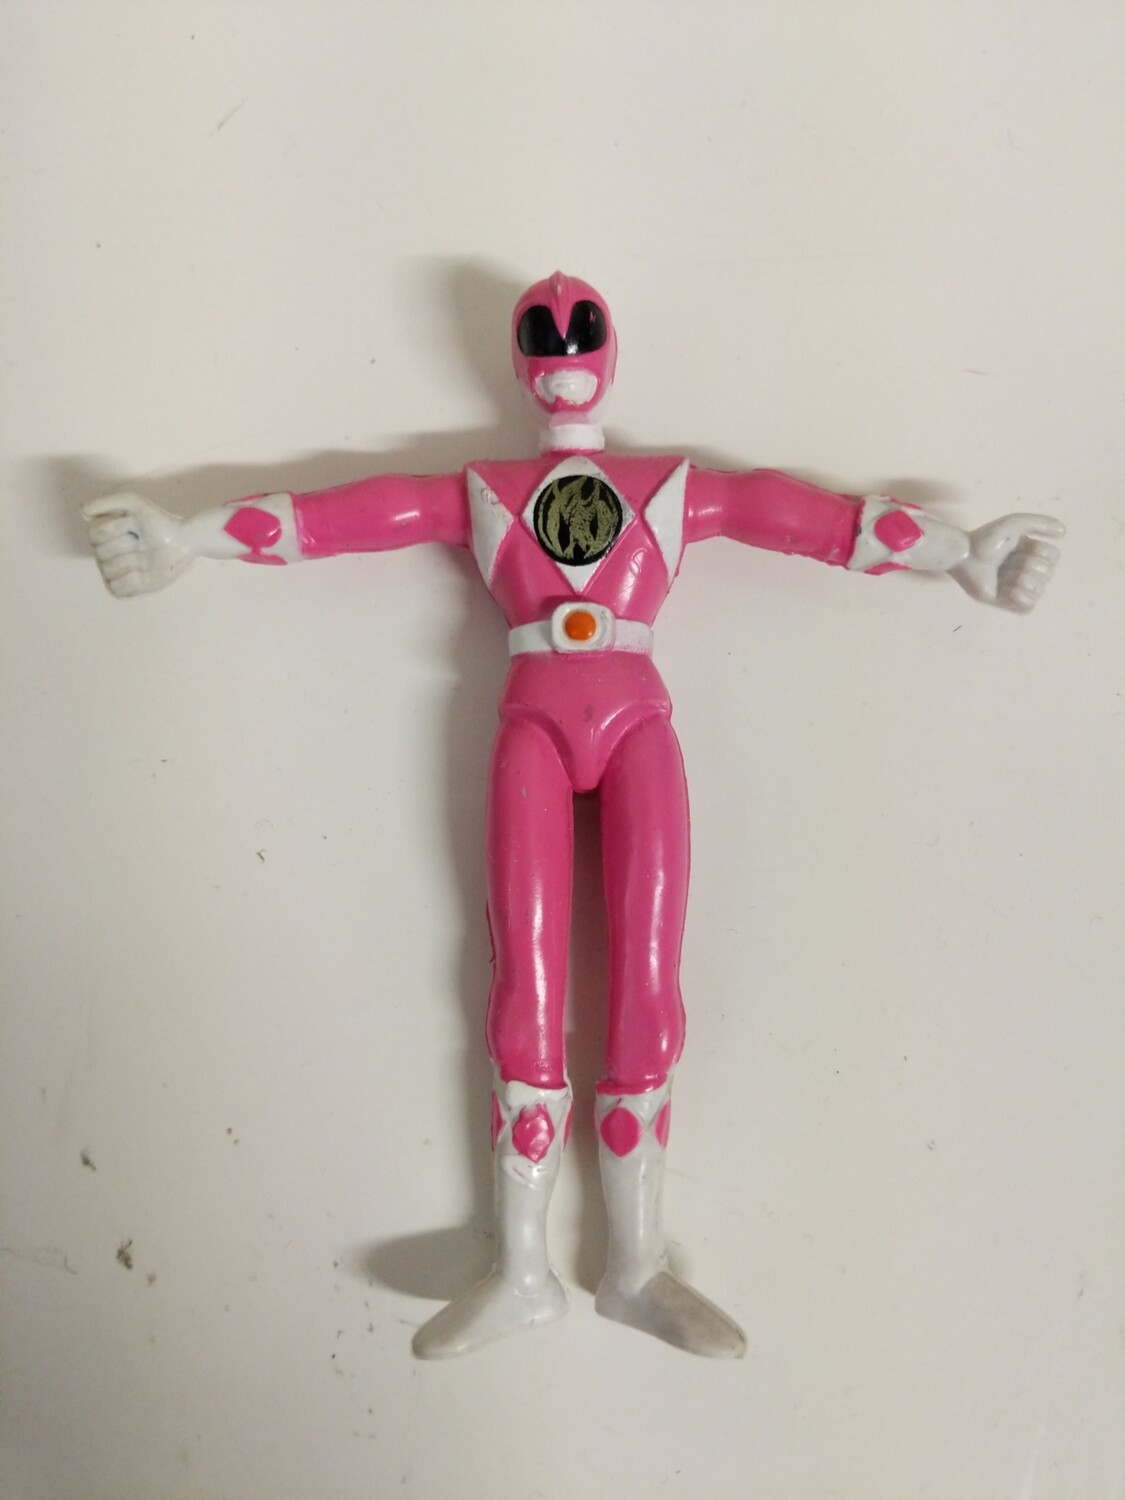 Mighty Morphin Power Rangers rubber bendable figure : Pink Ranger